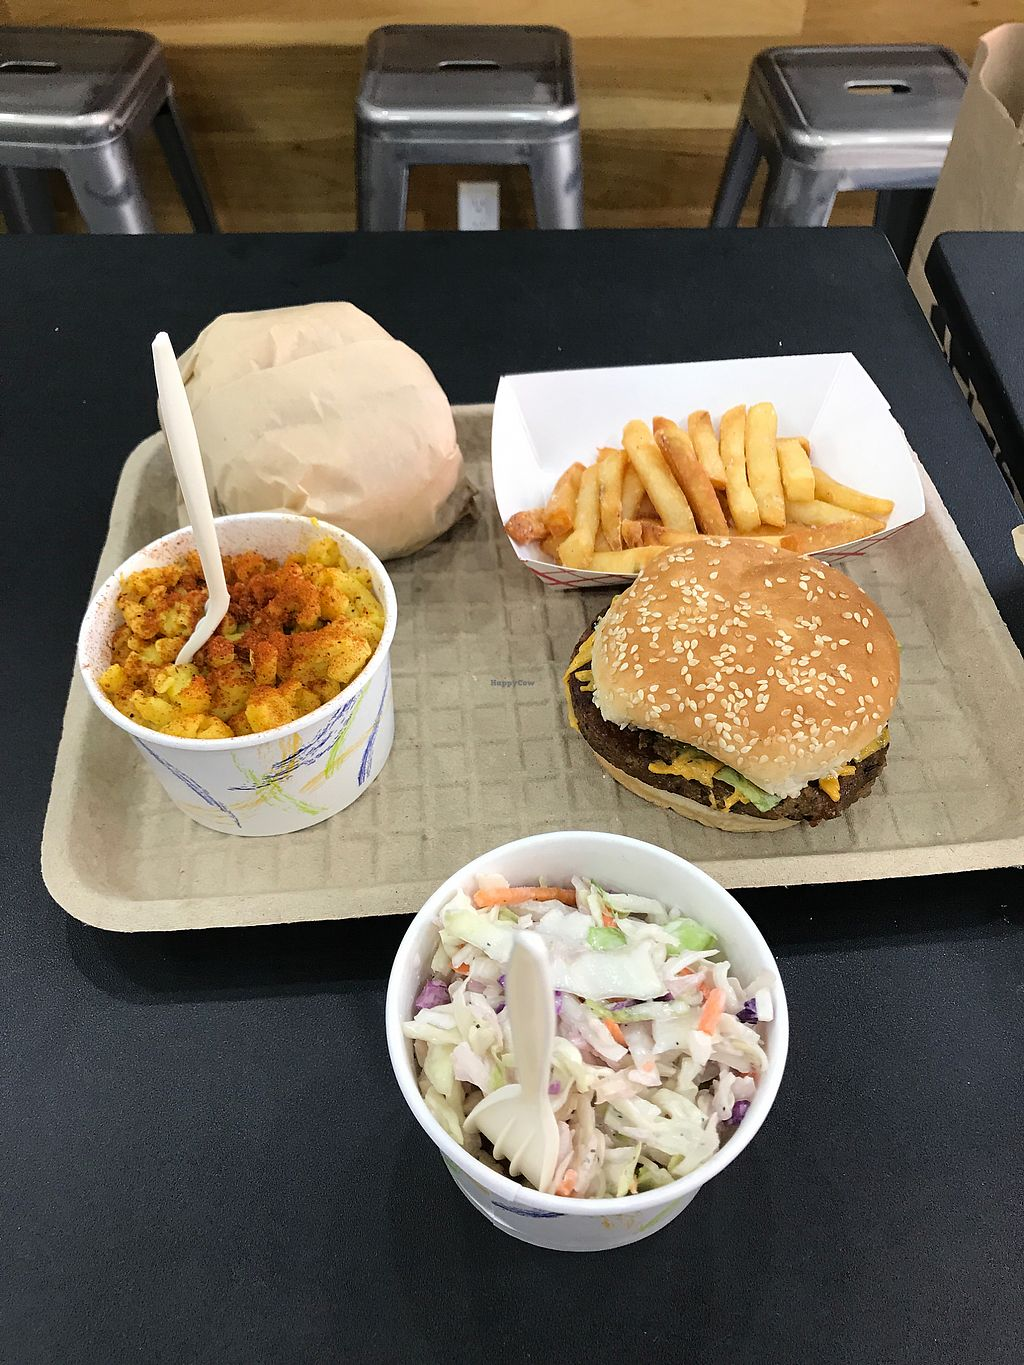 """Photo of Marty's V Burger  by <a href=""""/members/profile/ladybugvivi"""">ladybugvivi</a> <br/>Hungry?! <br/> September 9, 2017  - <a href='/contact/abuse/image/96798/302702'>Report</a>"""